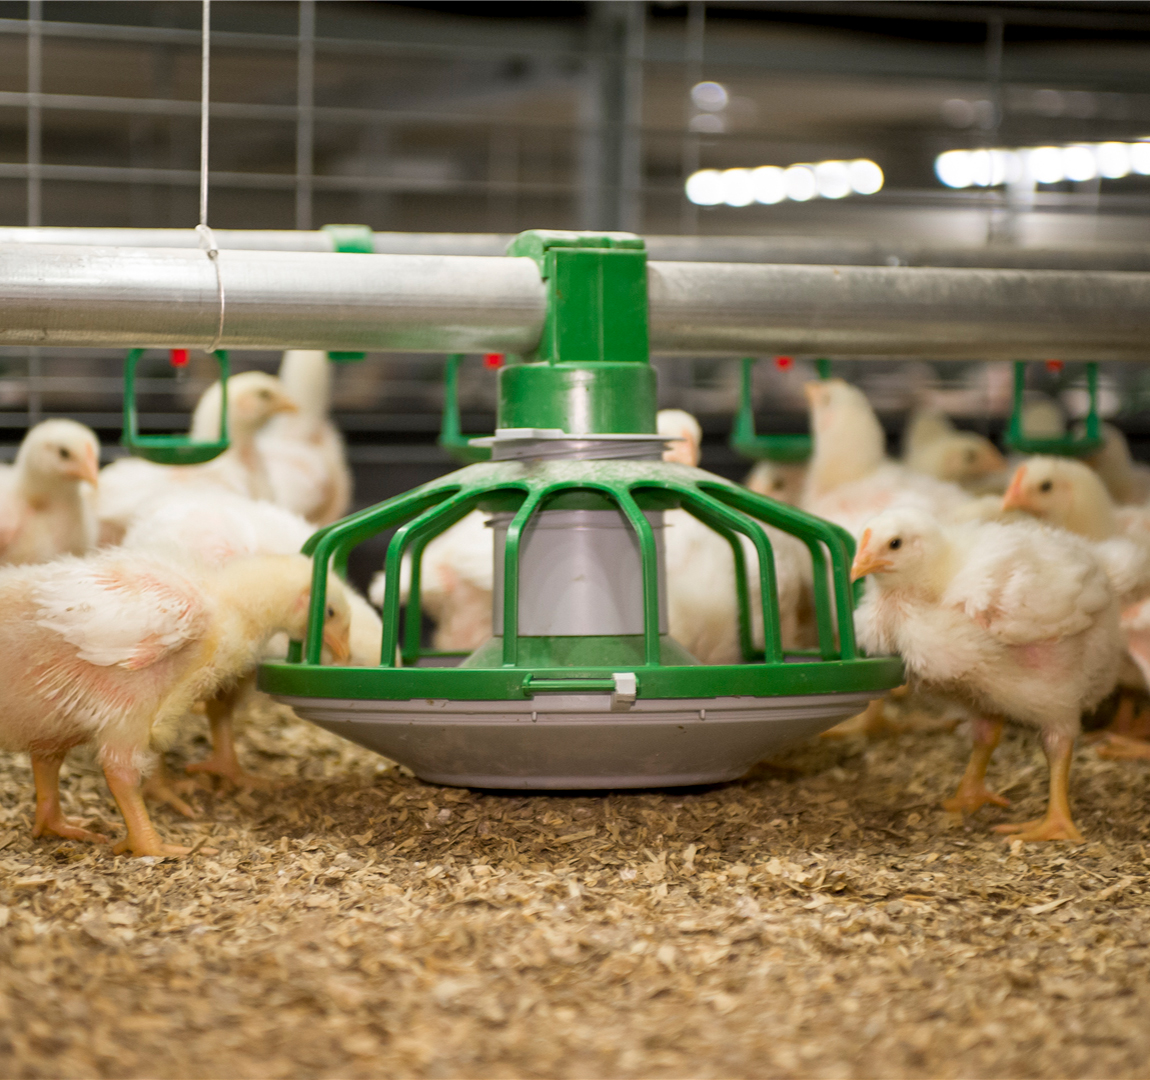 Perinatal broiler physiology between hatching and chick collection in 2 hatching systems